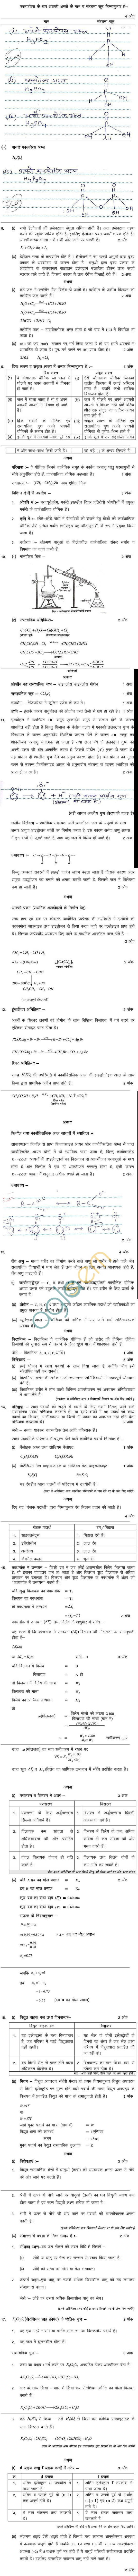 MP BoardClass XII Chemistry Model Questions & Answers -Set 4